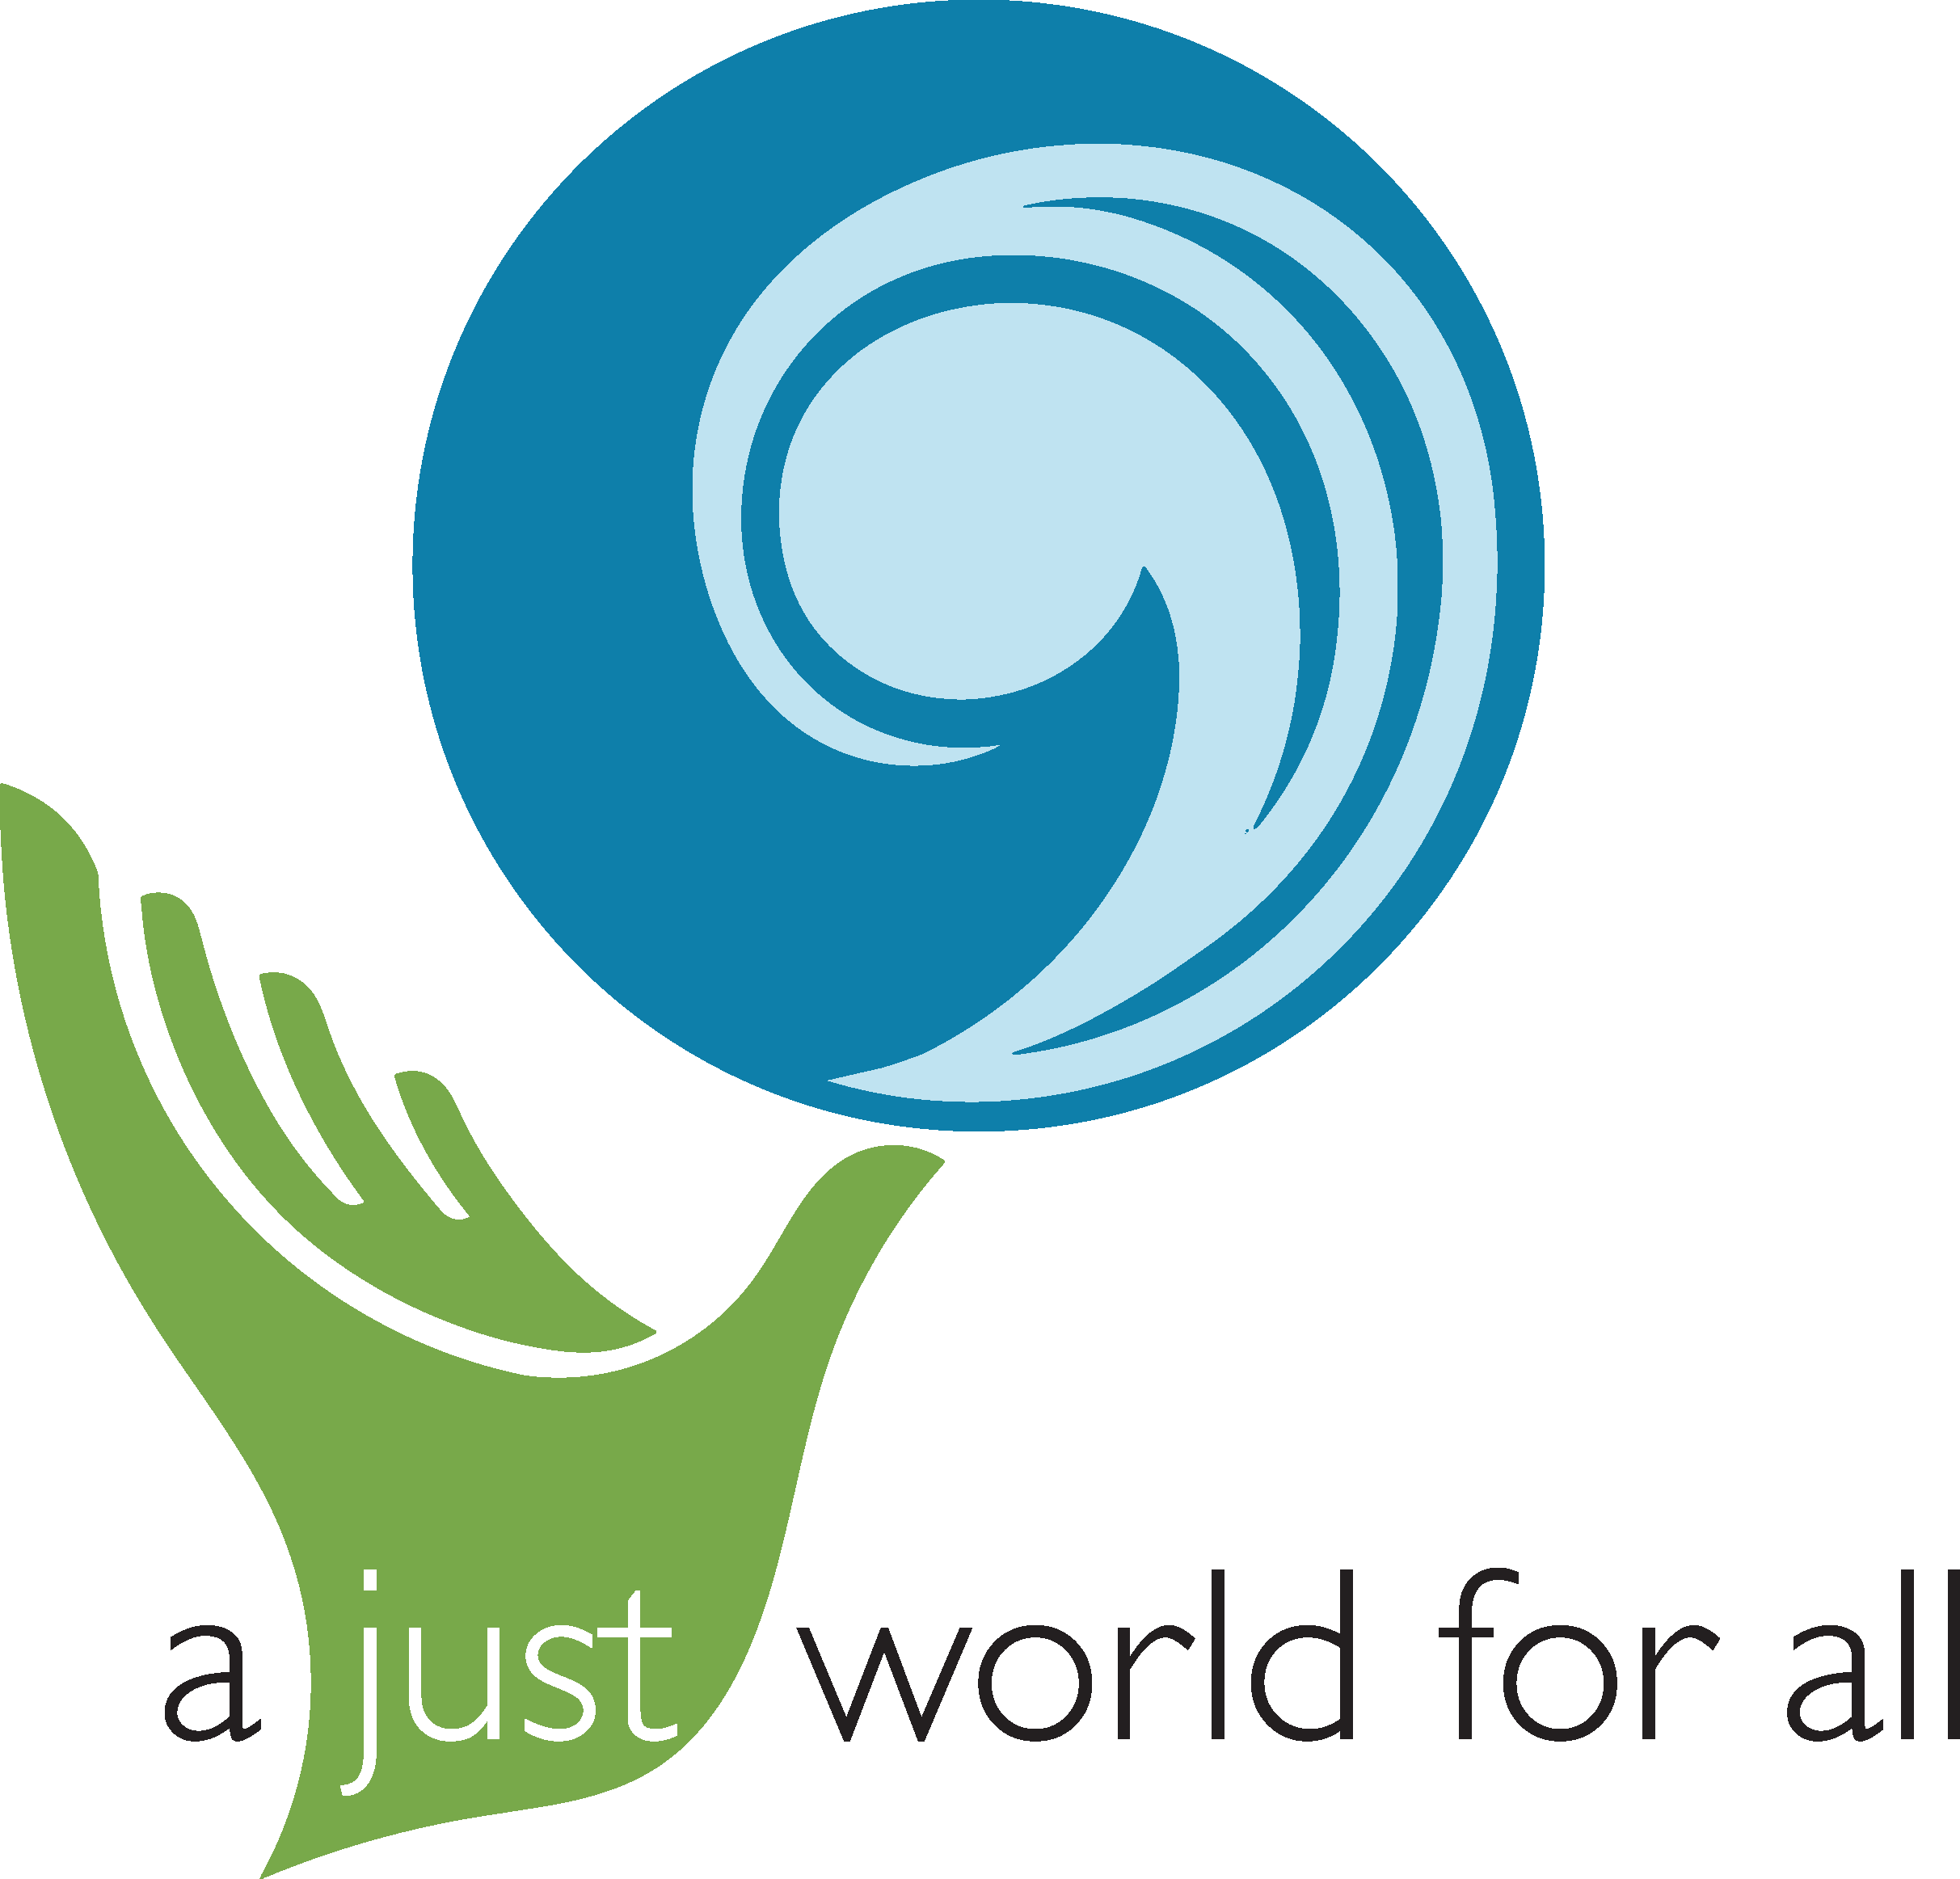 United Church of Christ (UCC) - A Just World for All